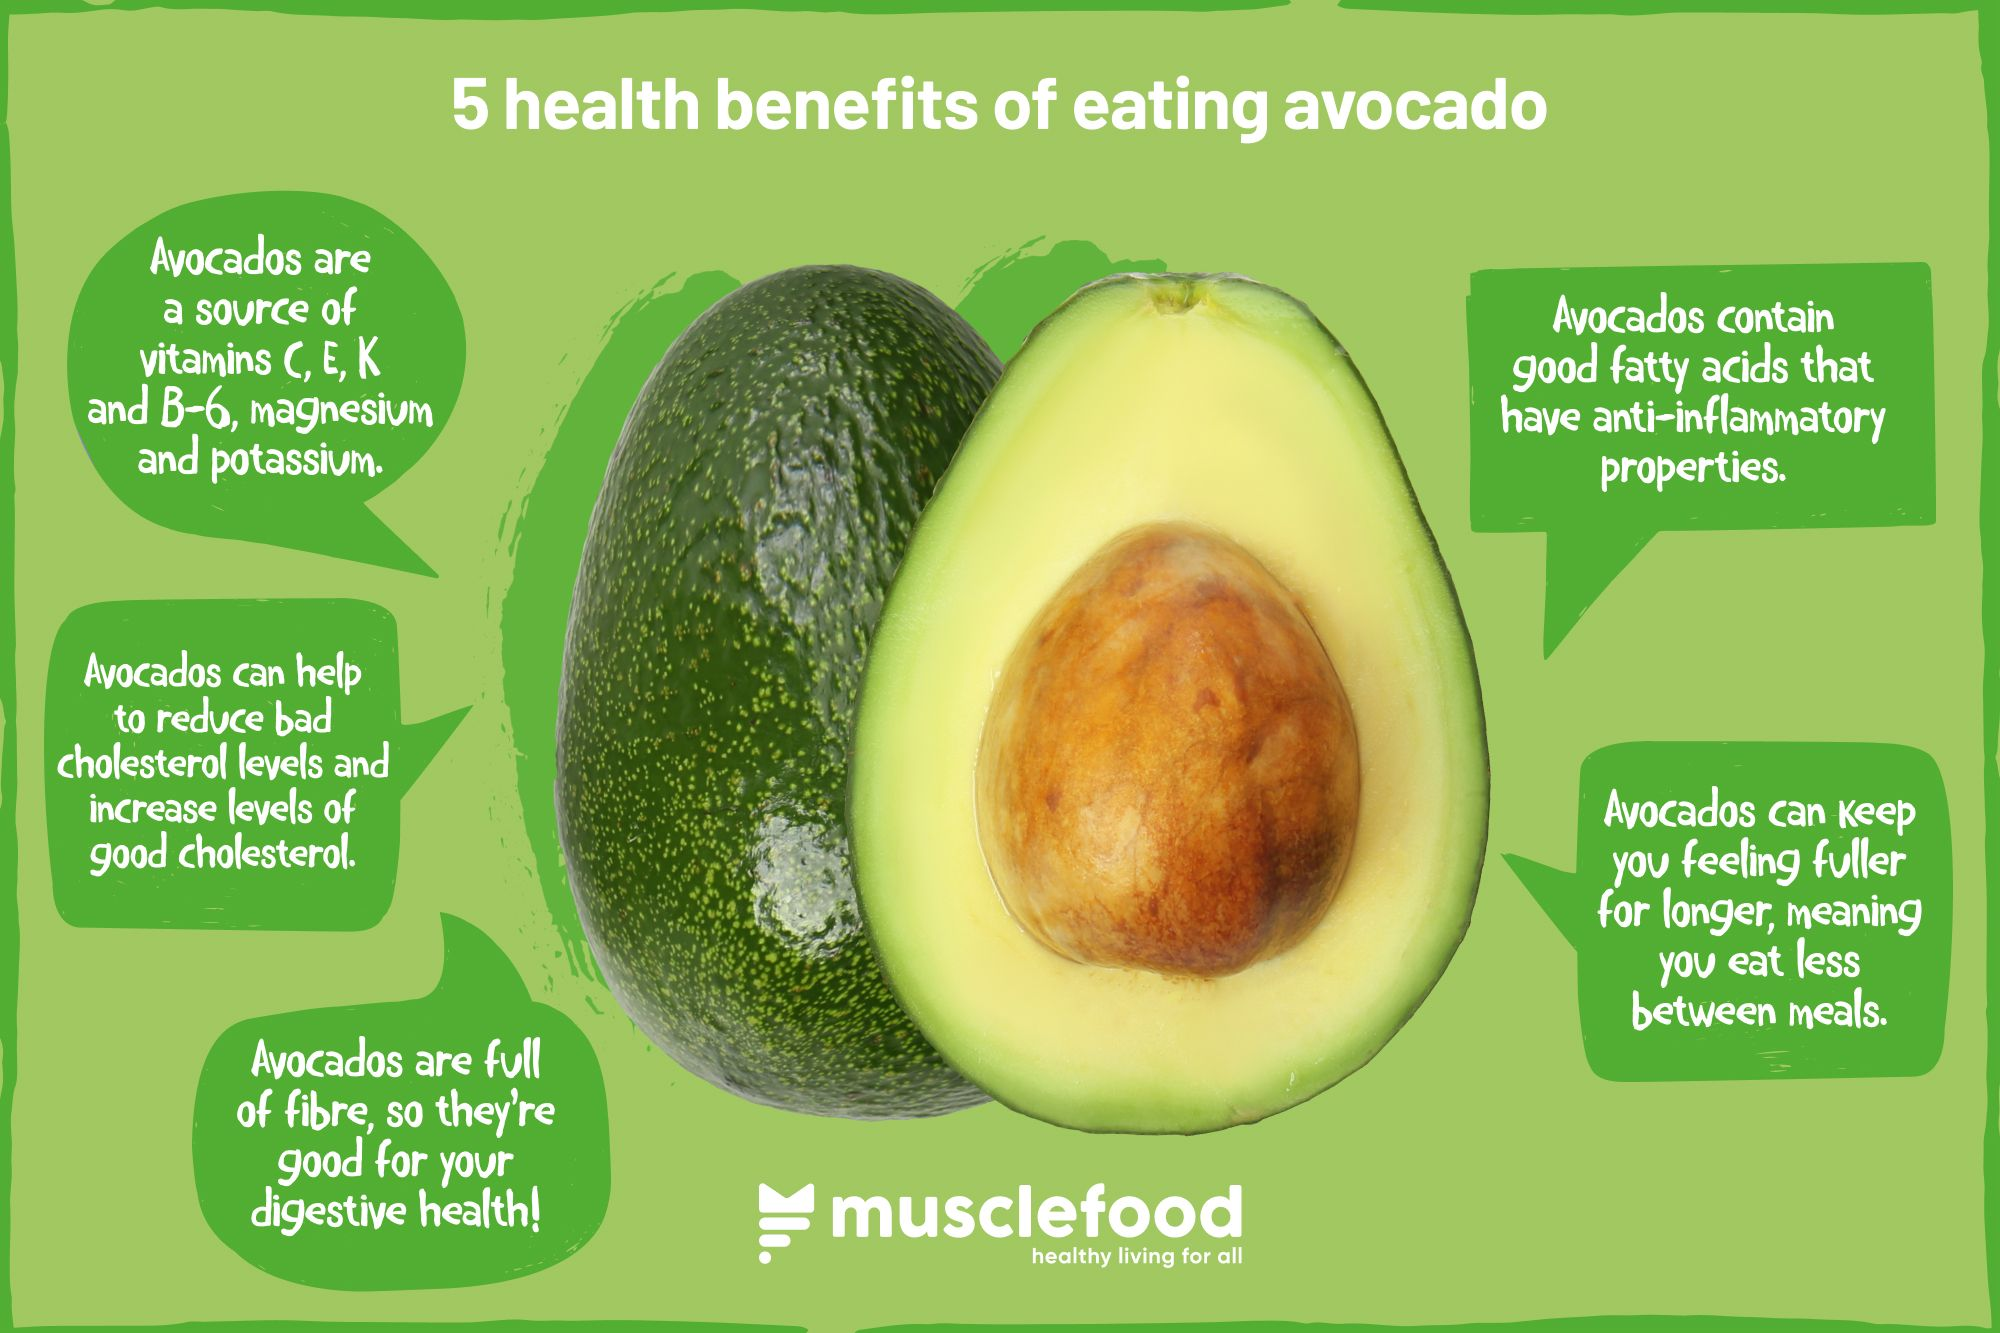 is avocado good for a low cholesterol diet